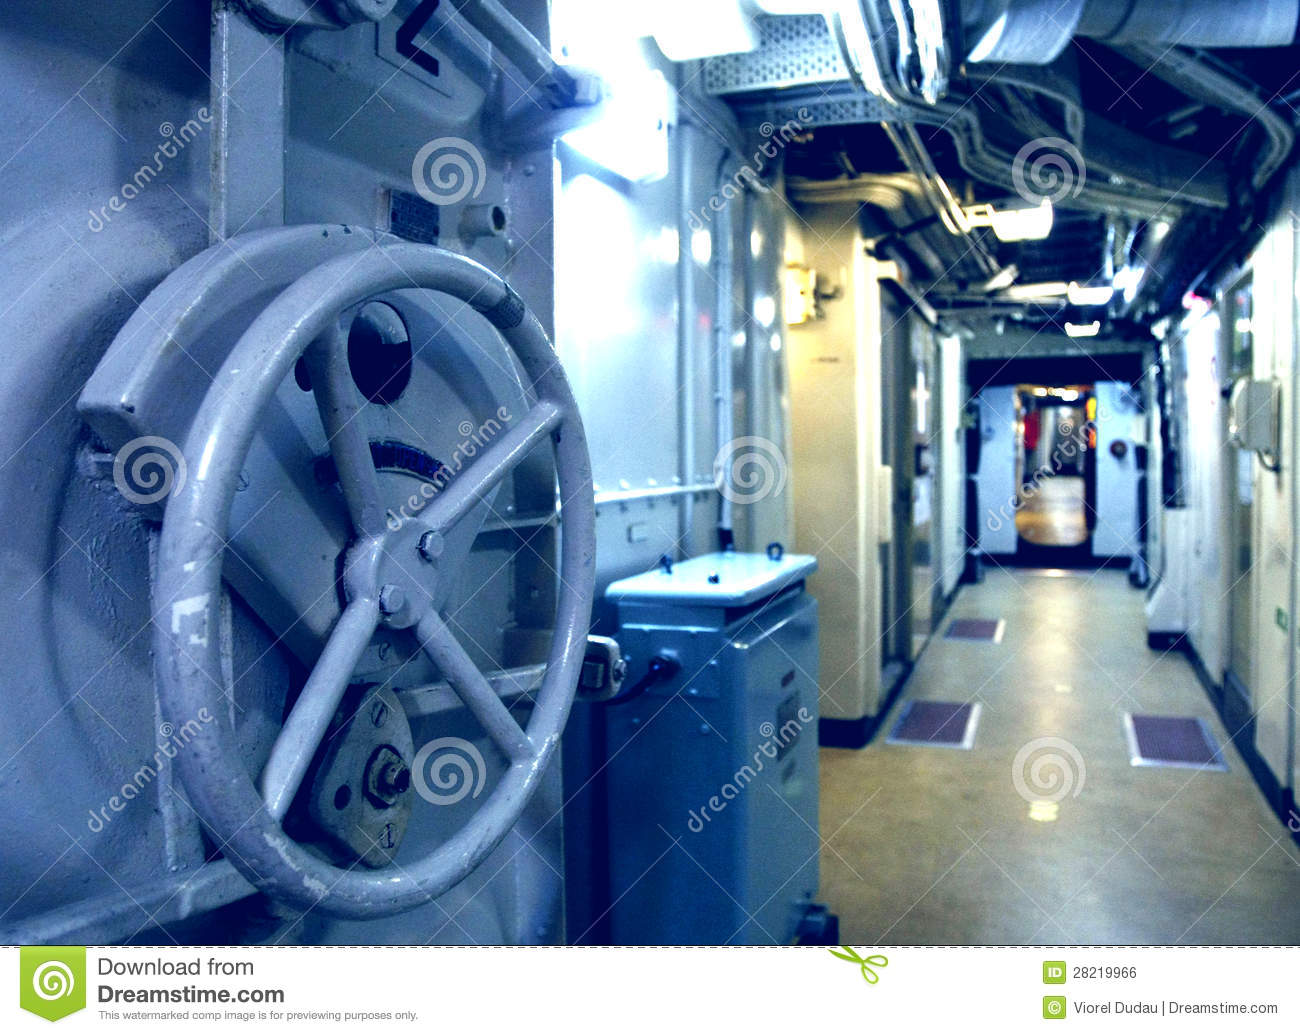 Submarine Interior Royalty Free Stock Image - Image: 28219966